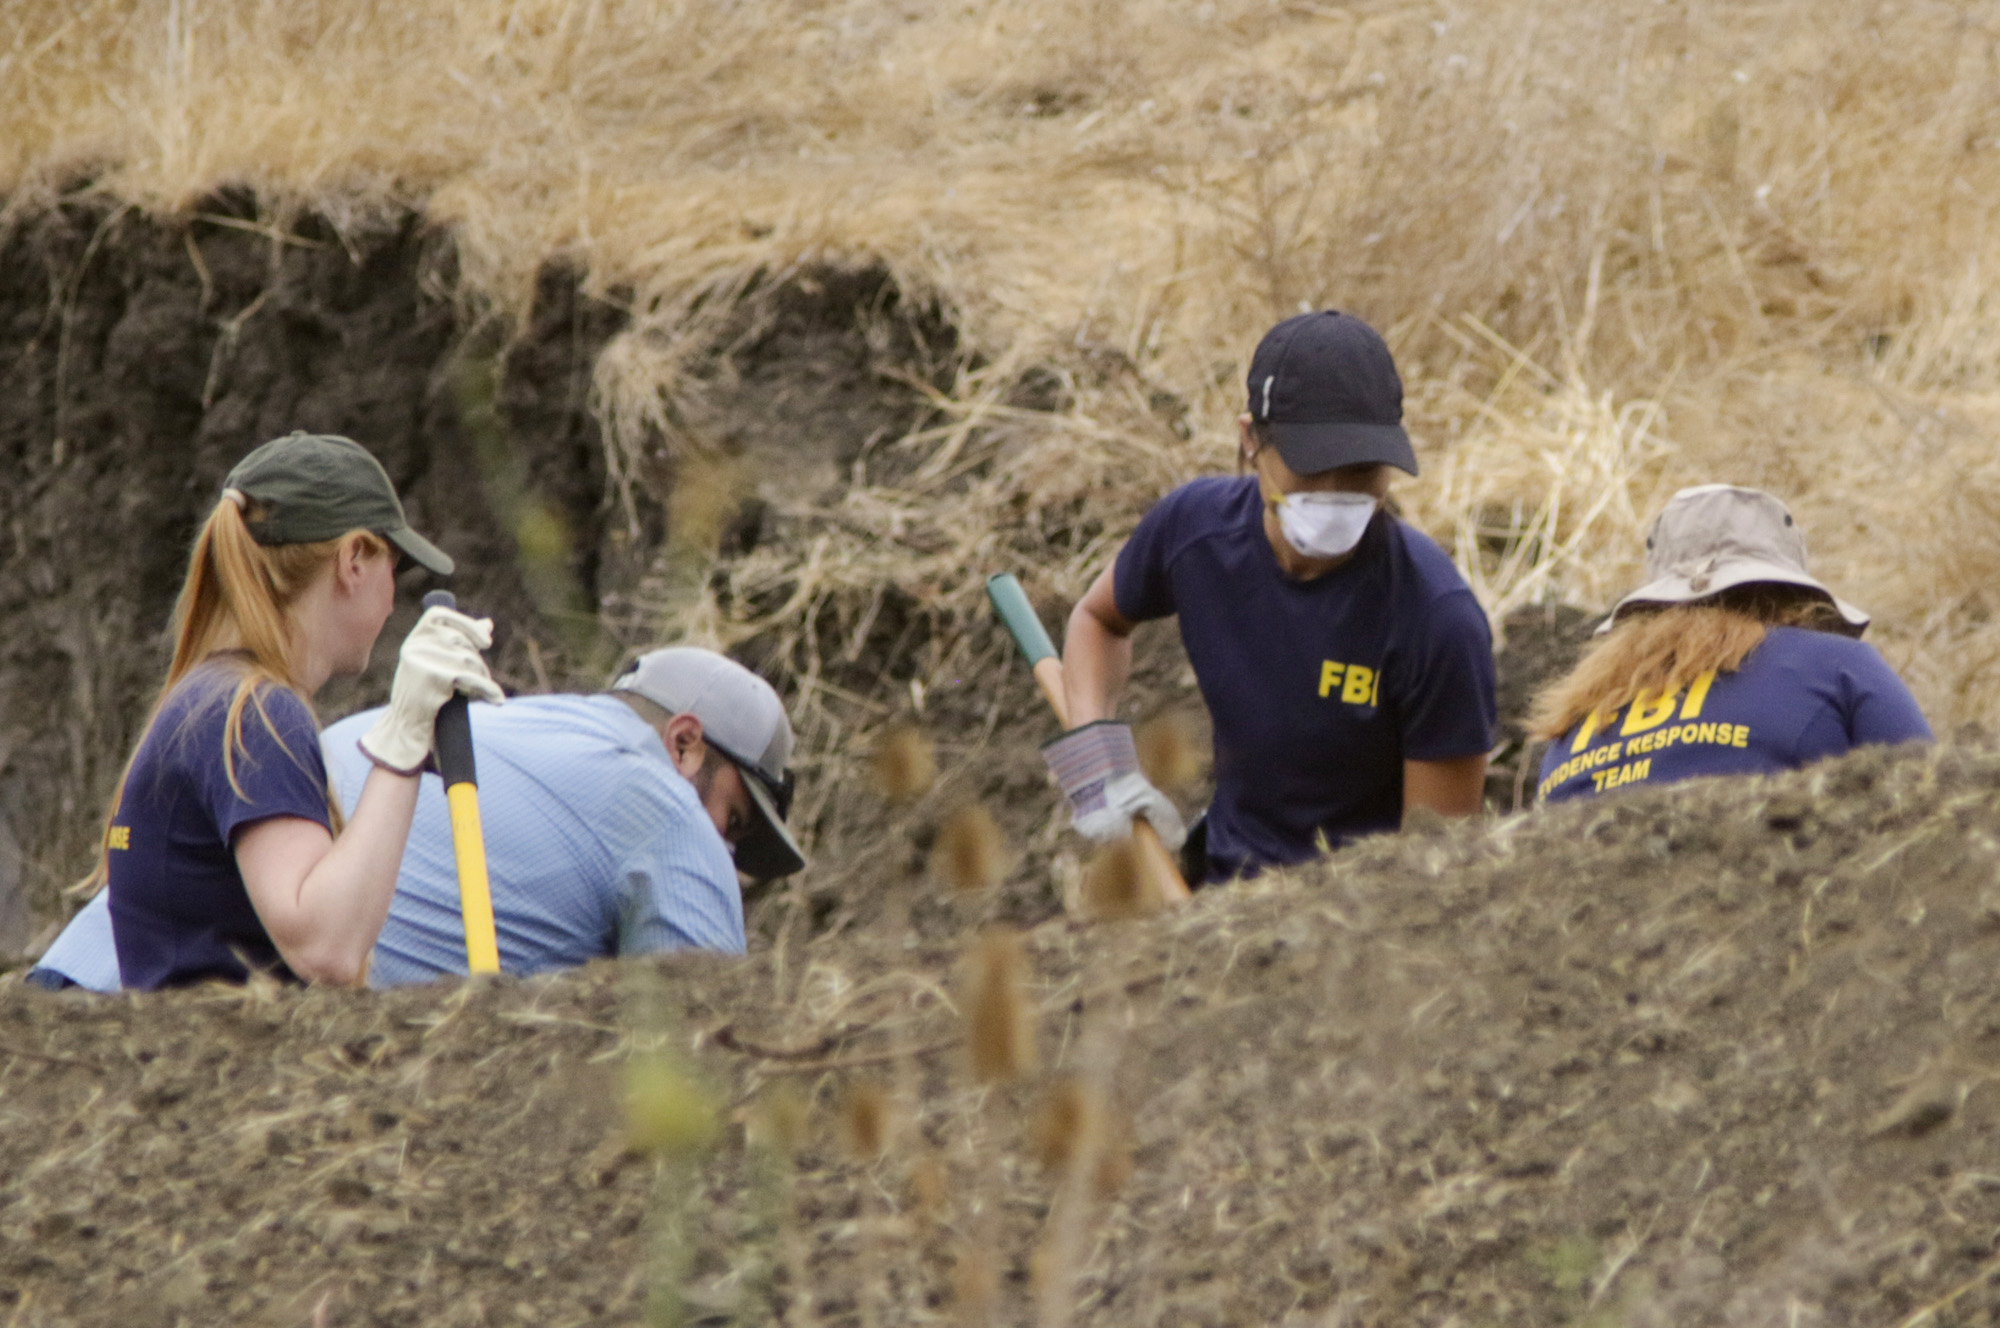 The FBI and San Luis Obispo County Sheriff's Department continue their dig and investigation on the hillside above Cal Poly related to the disappearance of student Kristin Smart two decades ago, Thursday, Sept. 8, 2016 in San Luis Obispo, Calif. Kristin Smart, 19, of Stockton, was last seen in the early morning of May 25, 1996, while returning to her dorm after an off-campus party. (David Middlecamp/The Tribune (of San Luis Obispo)